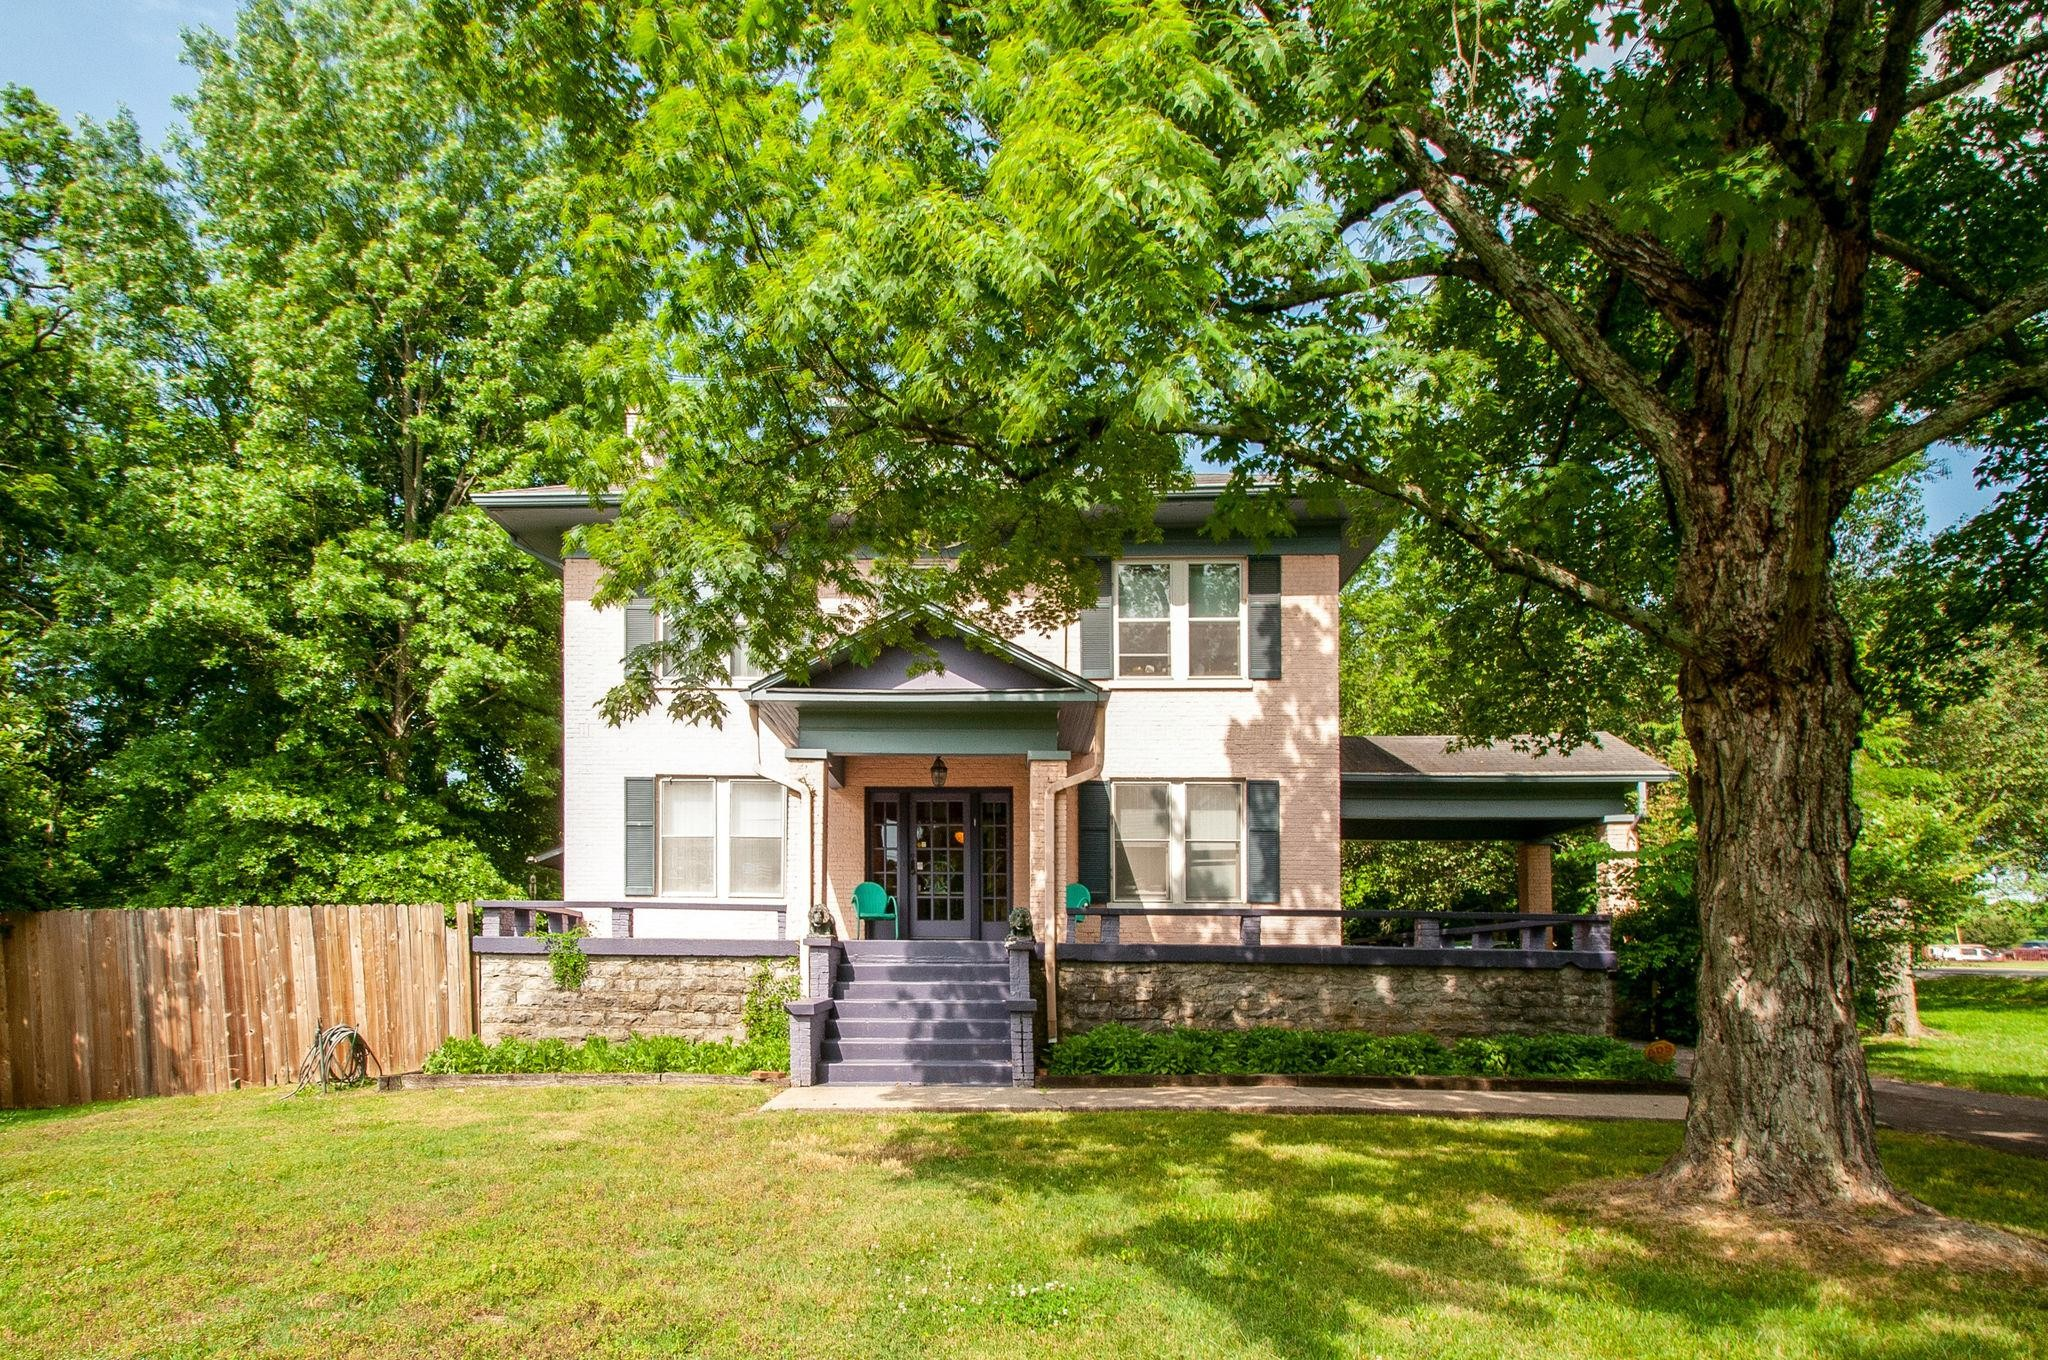 4501 Granny White Pike, Nashville, TN 37204 - Nashville, TN real estate listing